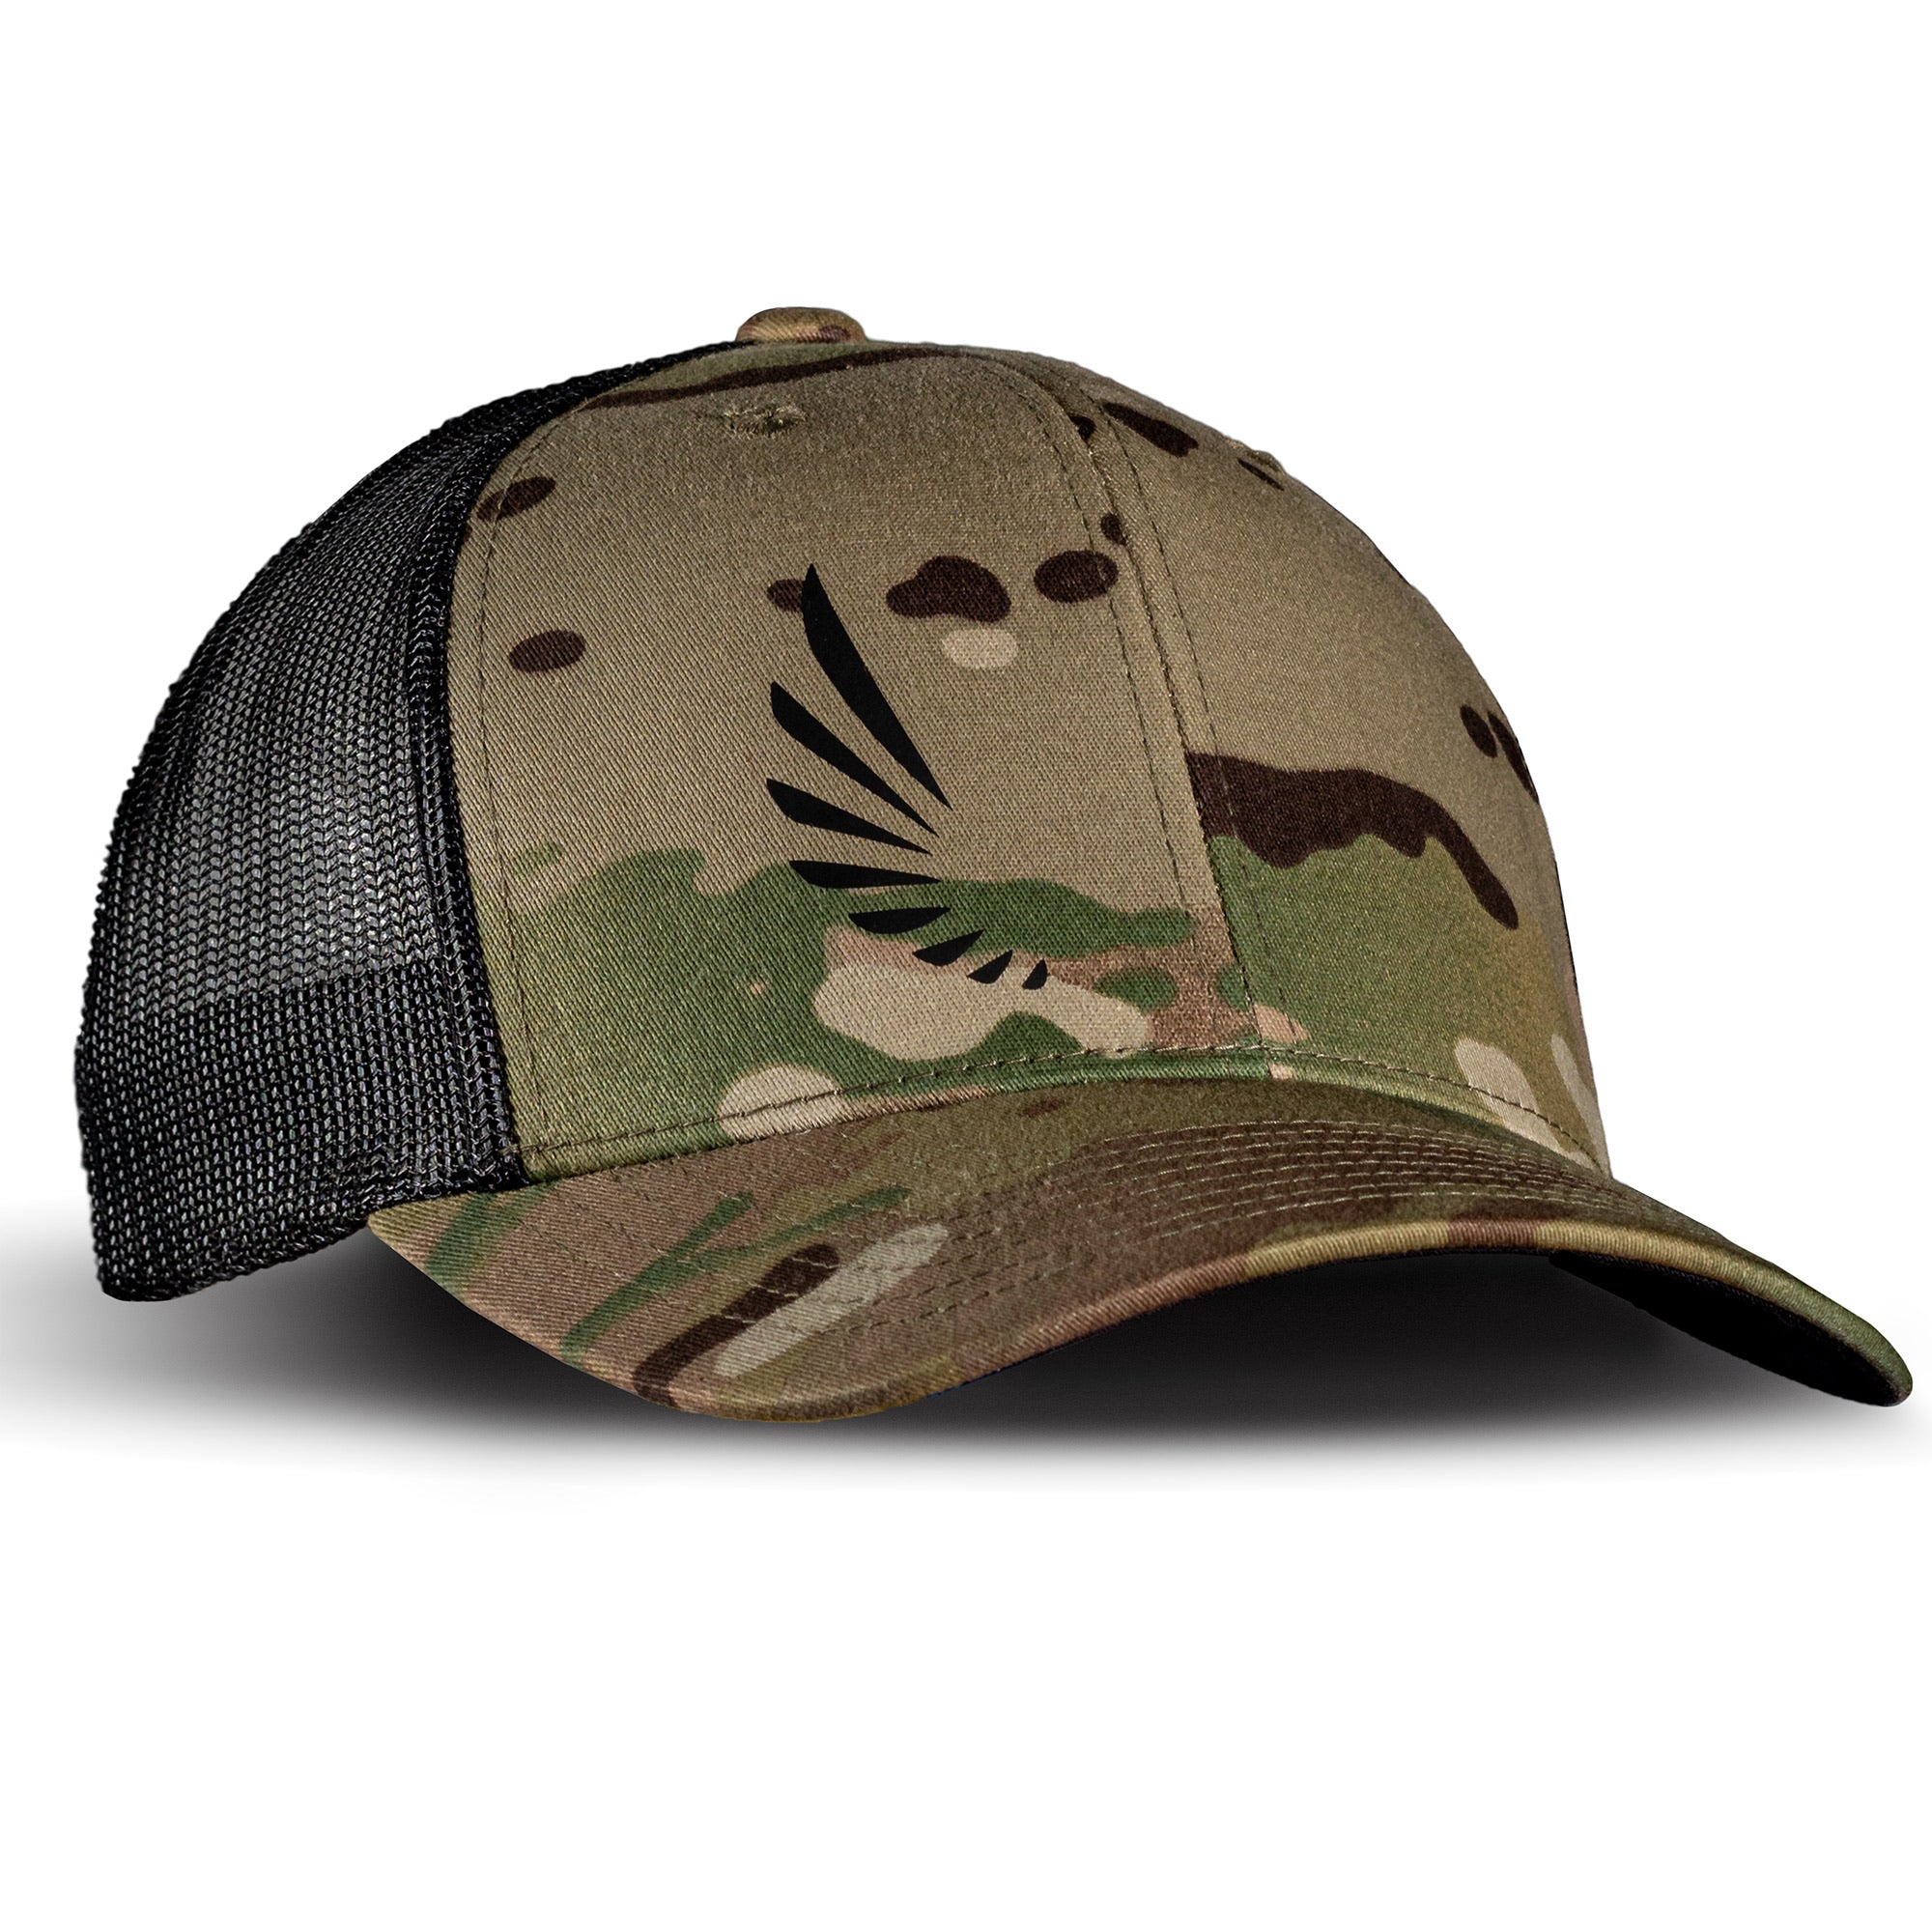 IFF Trucker Hat | Multicam Series